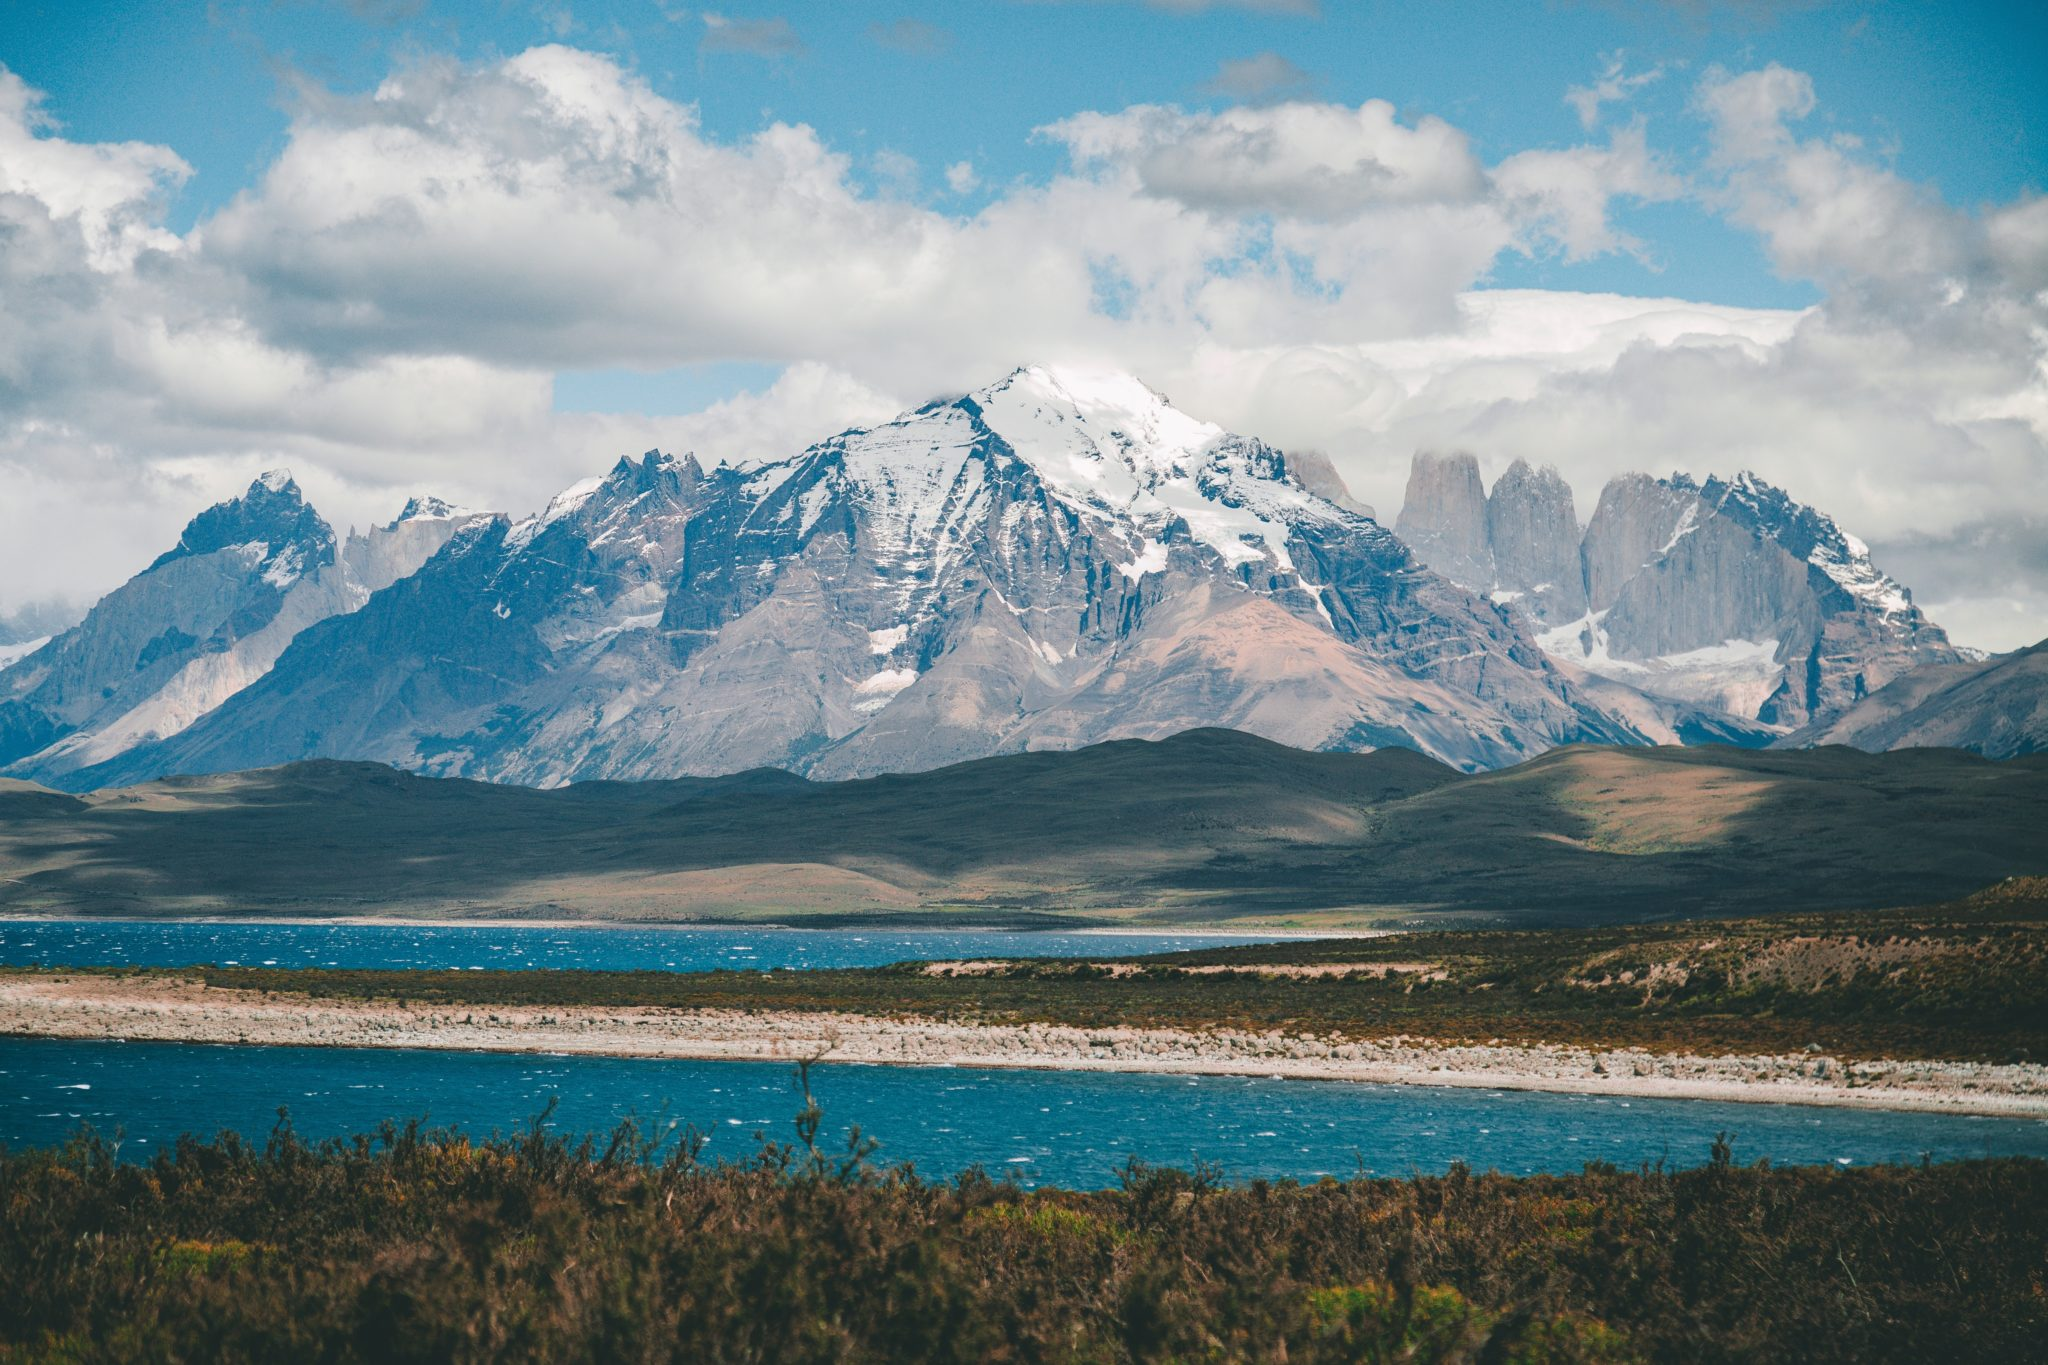 paysages torres del paine patagonie chili